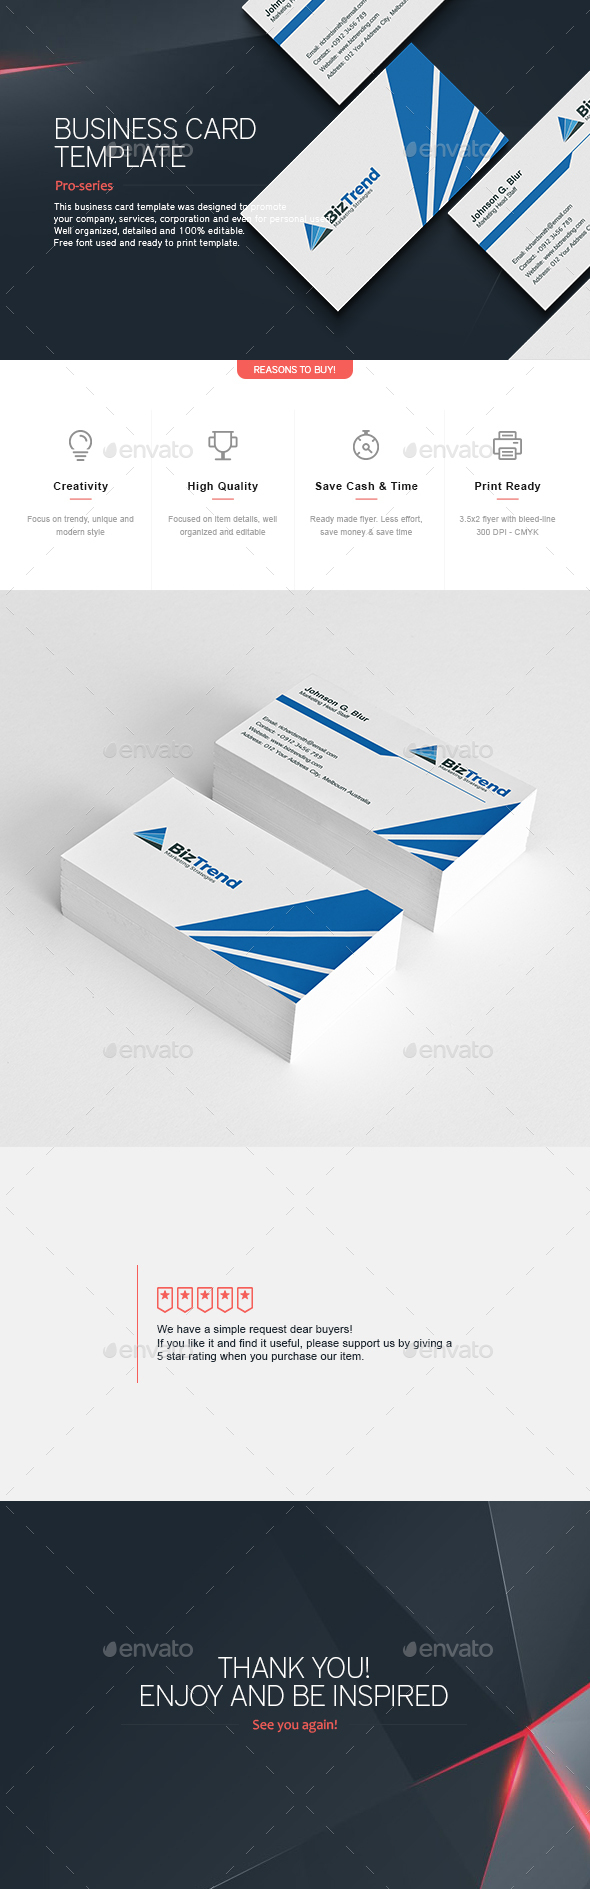 Business Card 2 - Corporate Business Cards